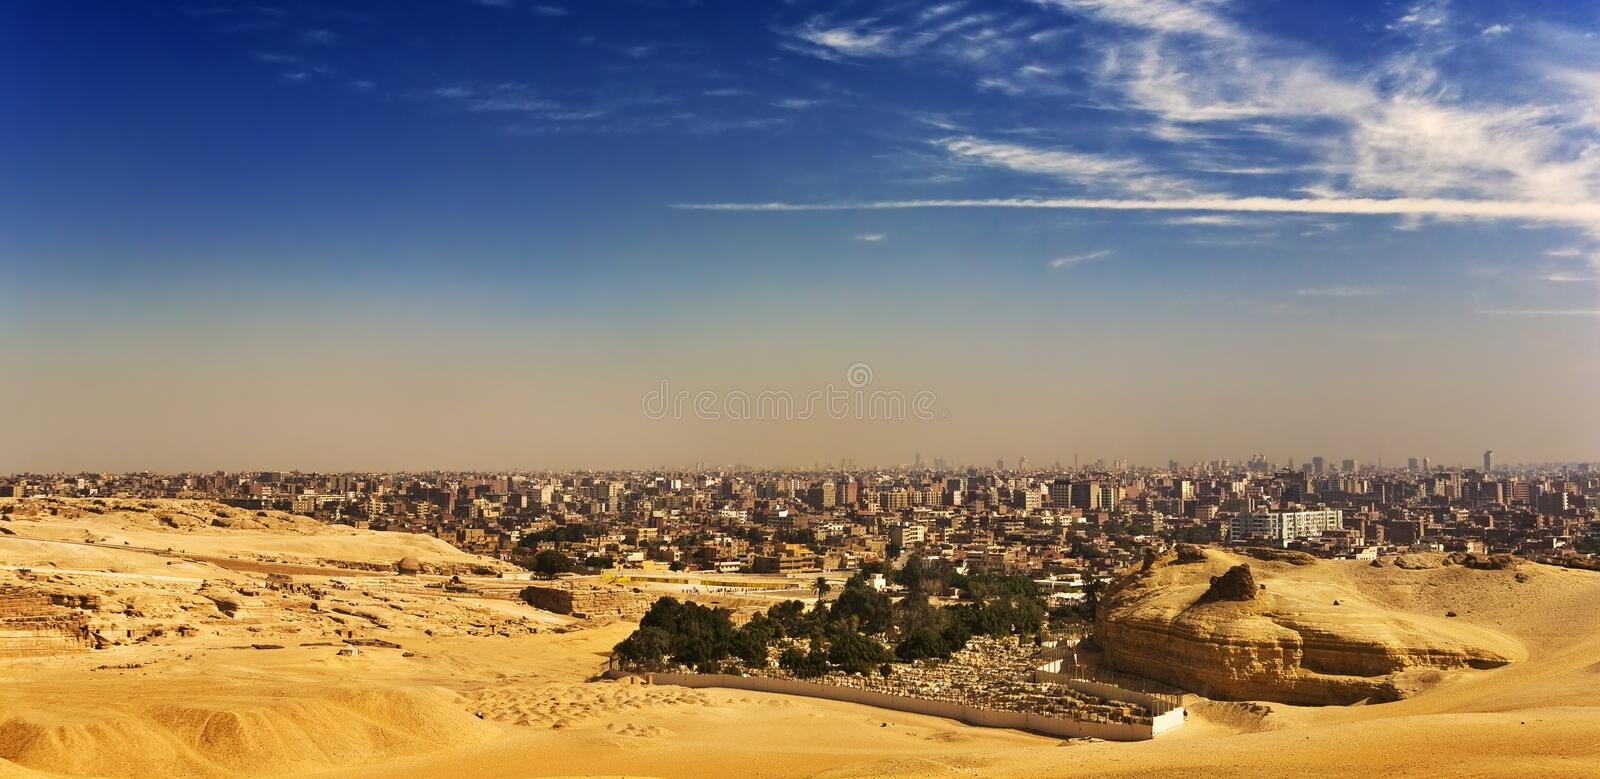 Download The Giza Plateau skyline stock image. Image of structure - 24478267